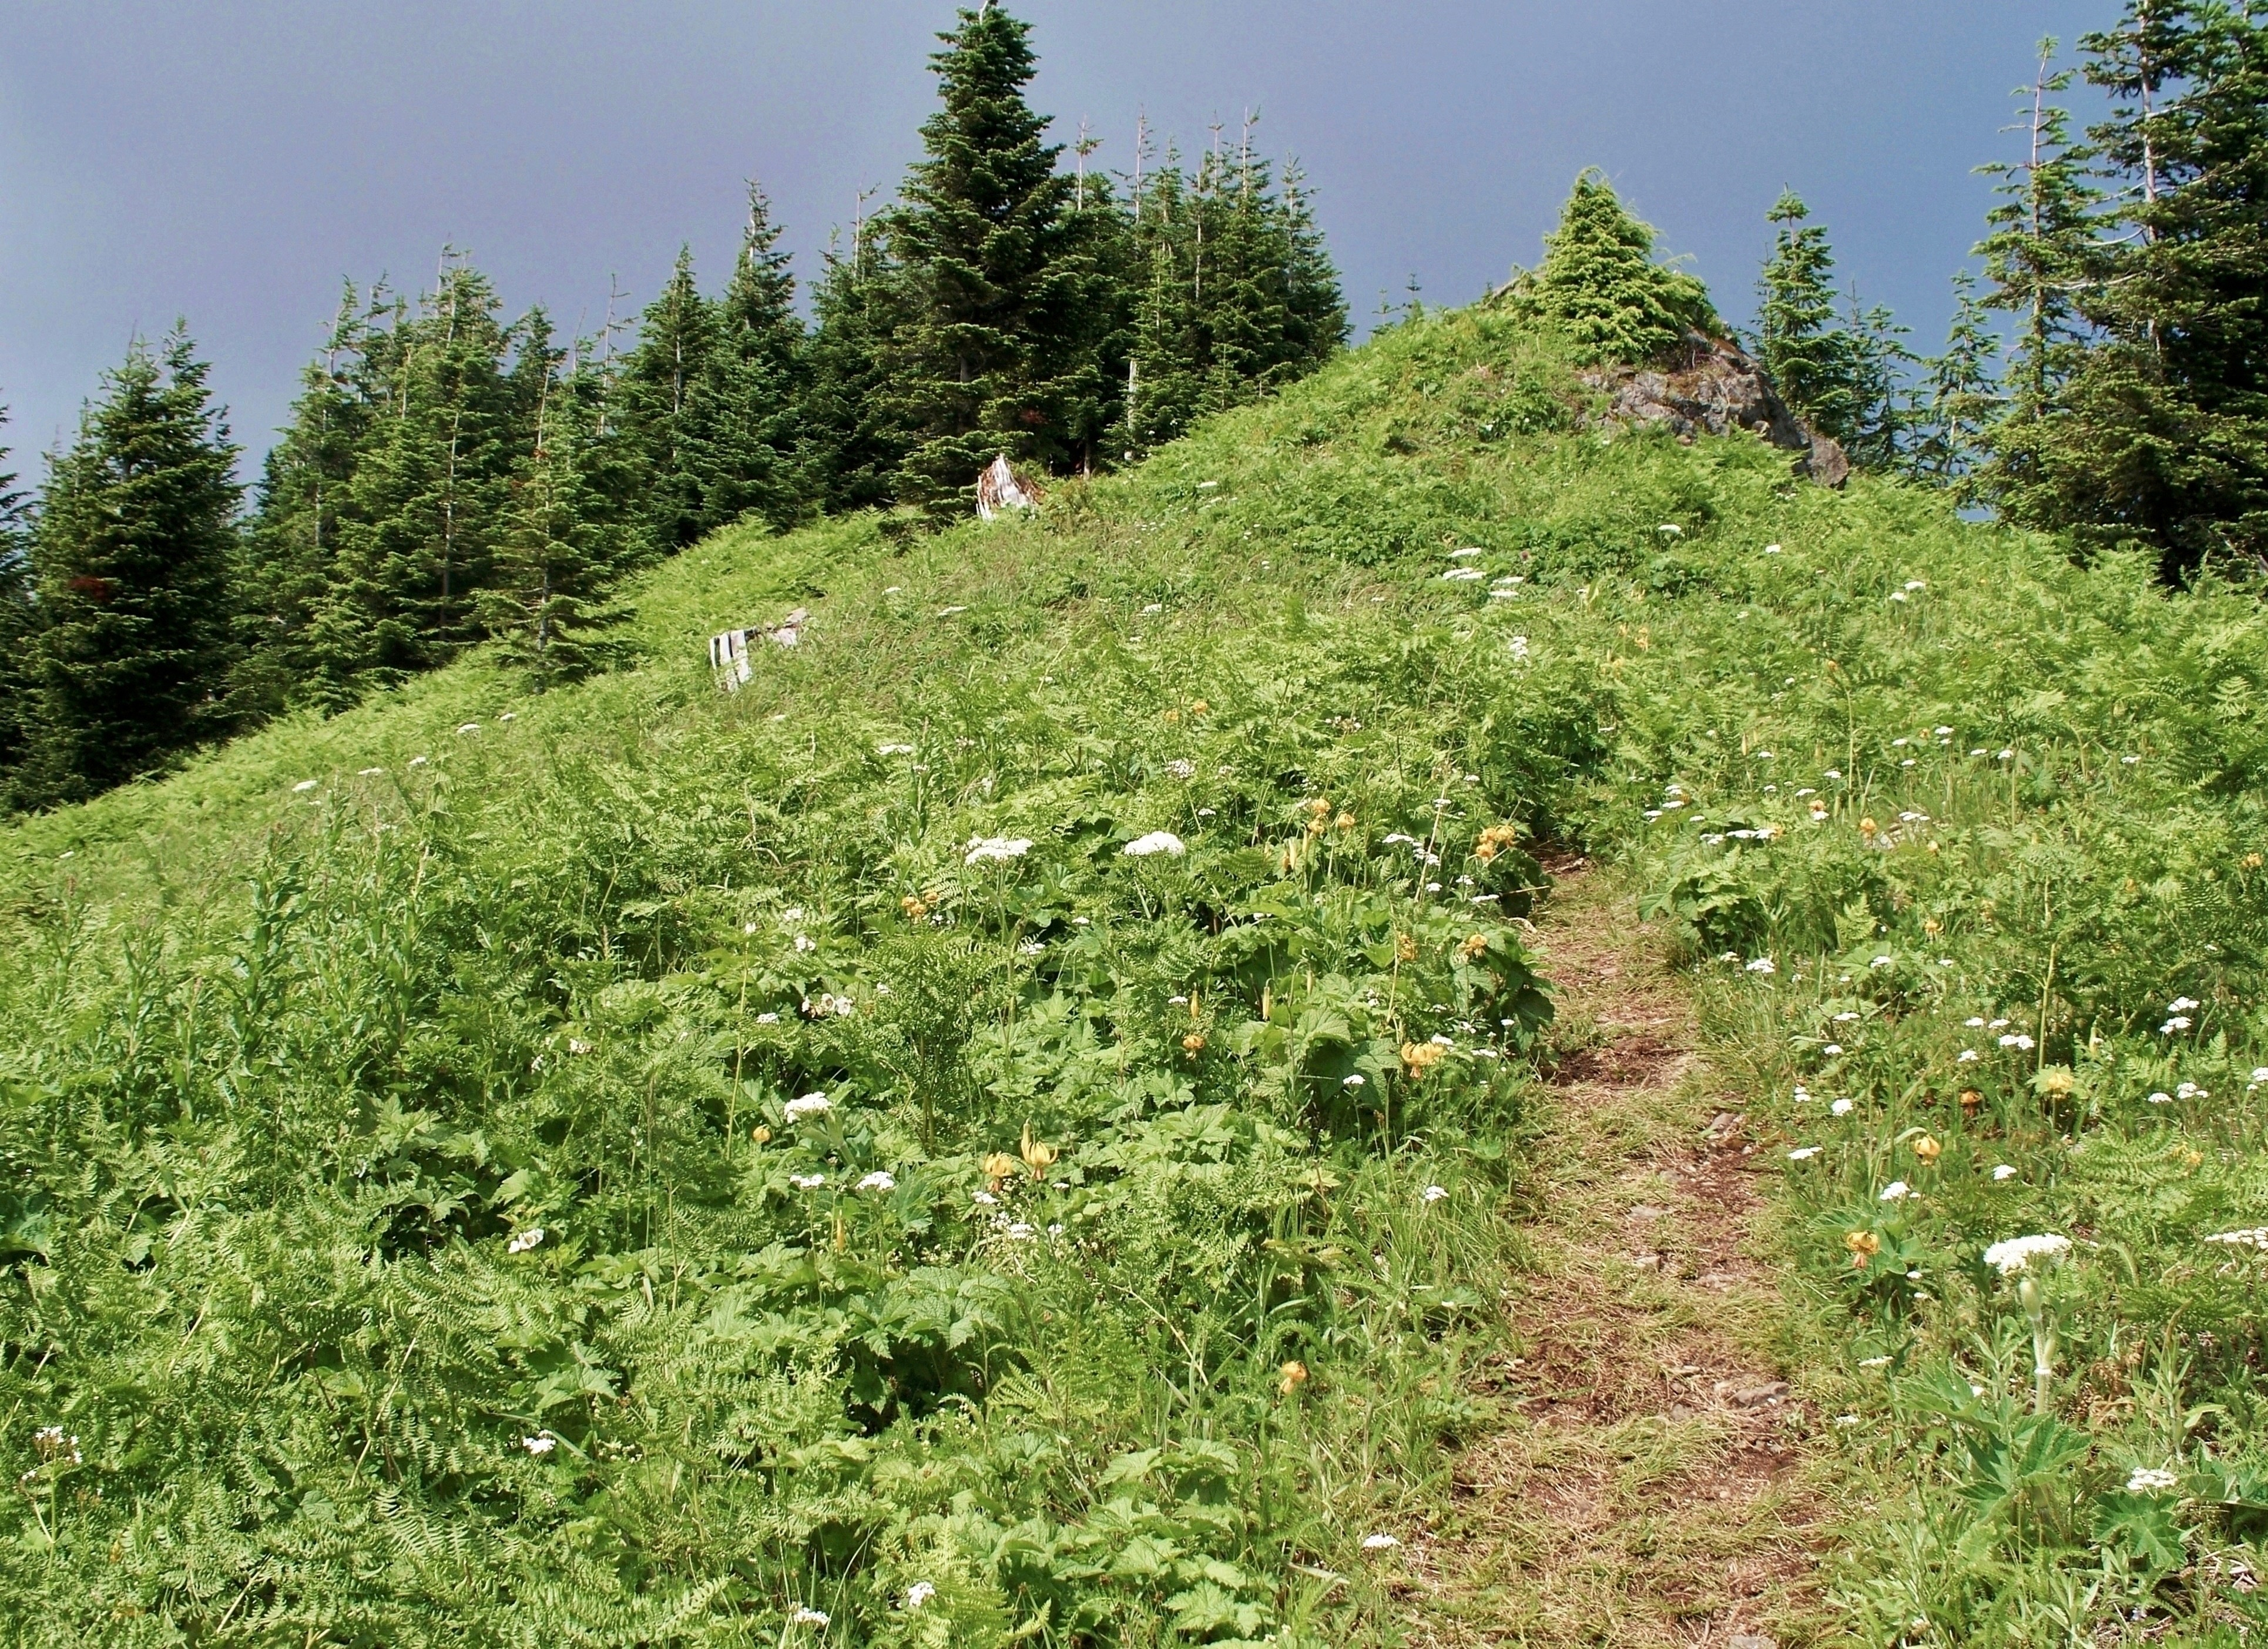 At the trail's final switchback, the woodland gives way to a burgeoning, steeply pitched meadow. Mount Washington Trail, July 09, 2009.